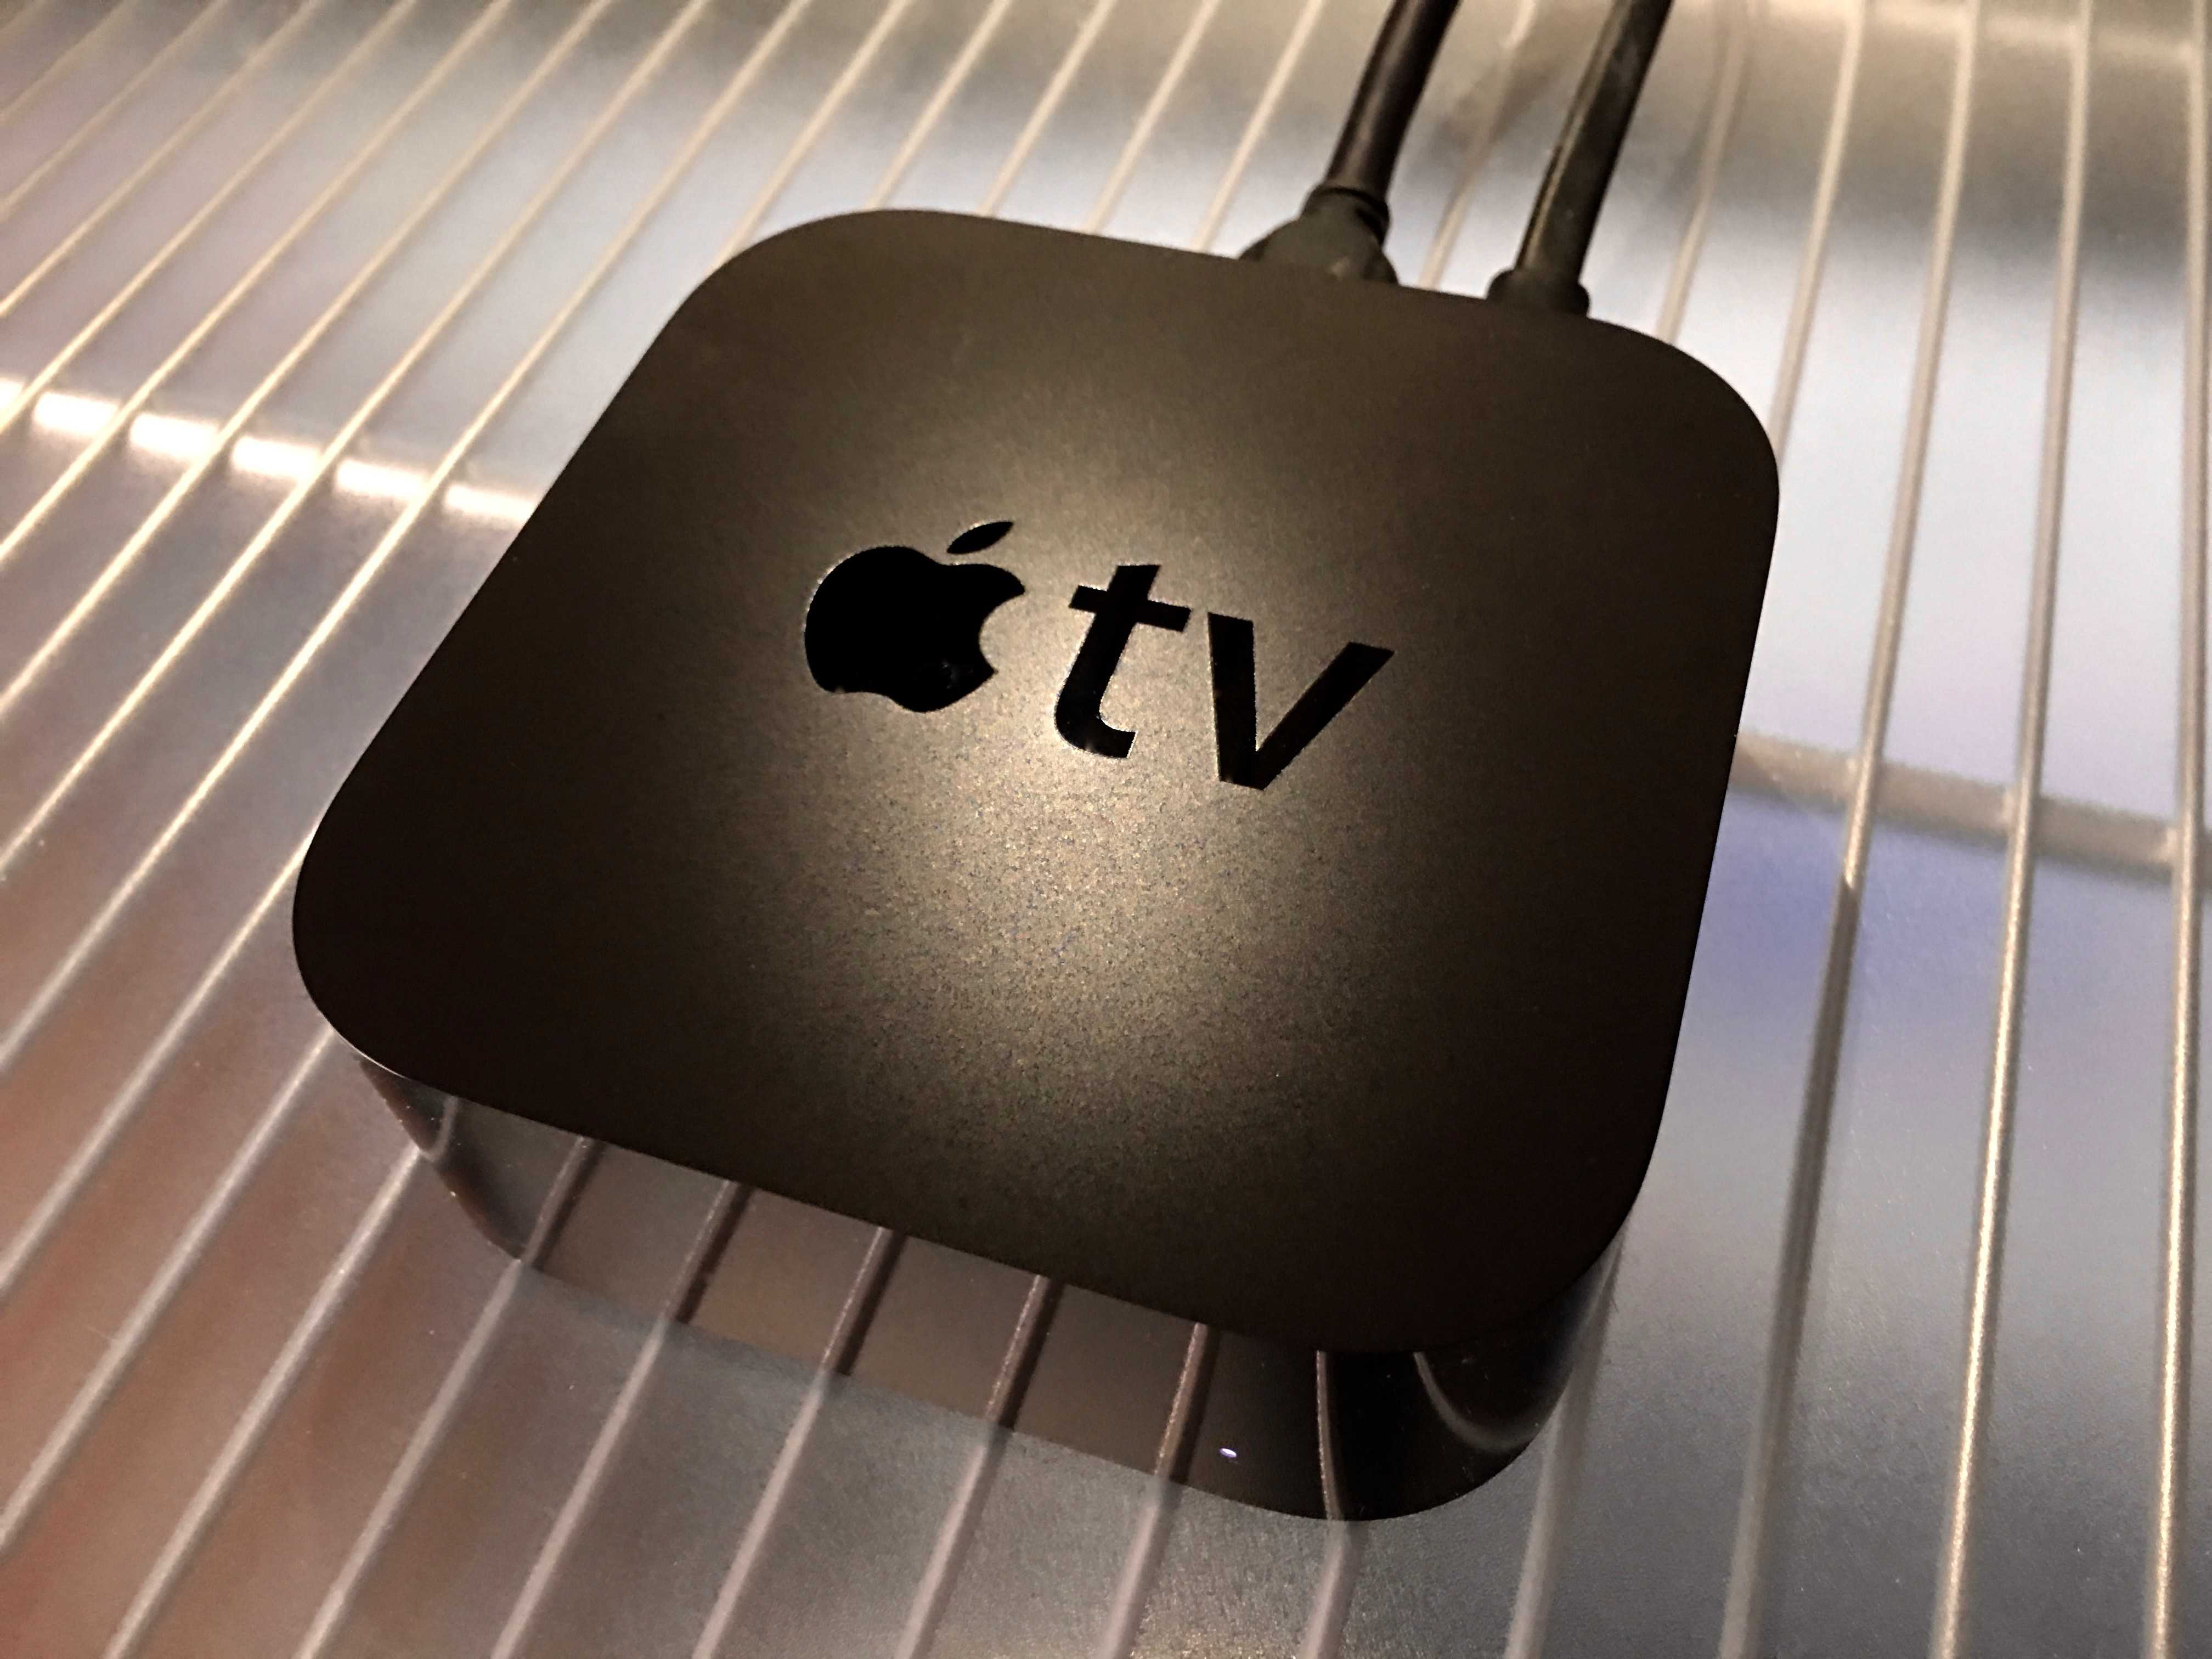 Reboot your Apple TV with style.